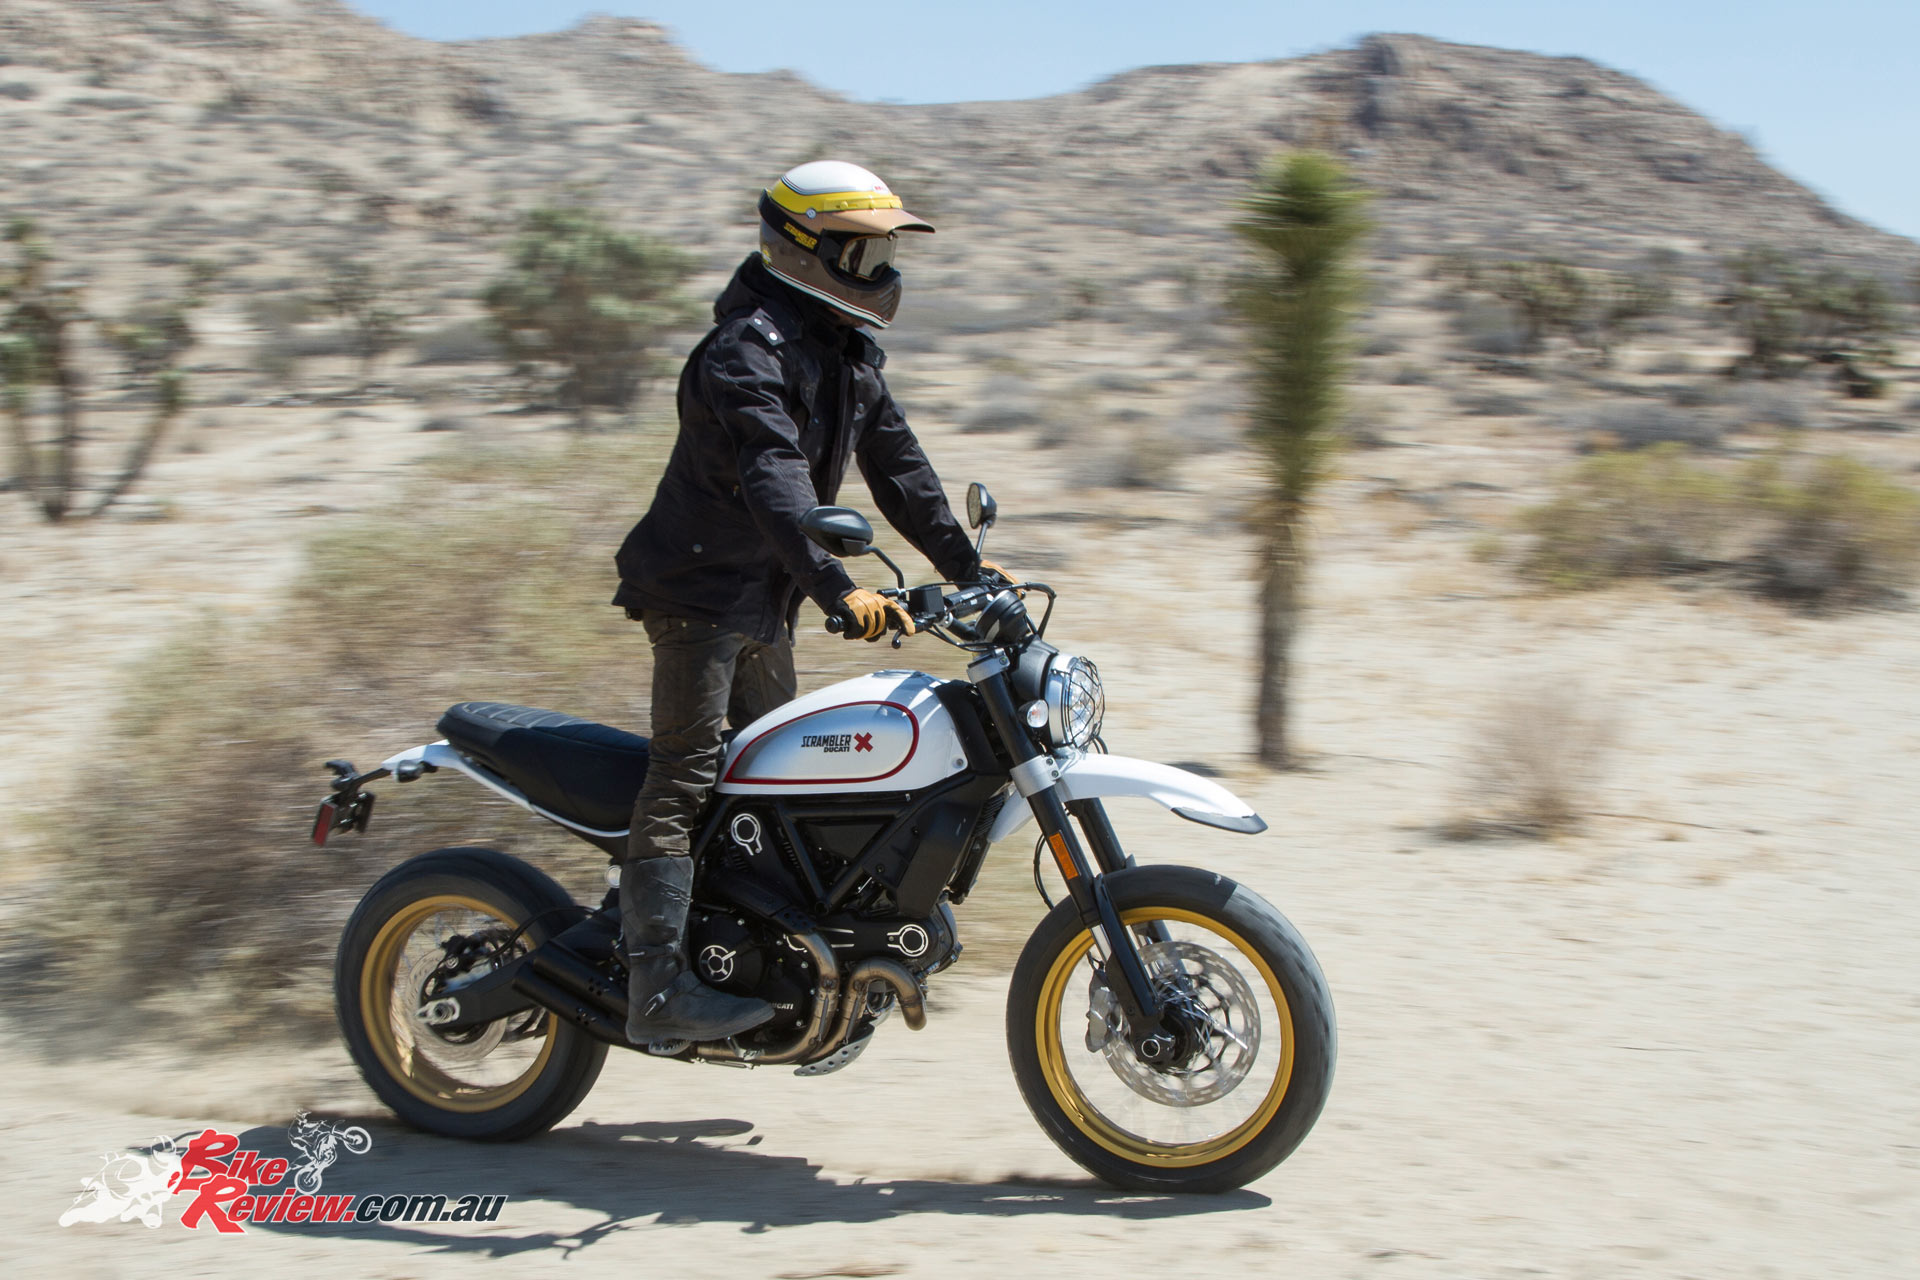 2017 Ducati Scrambler - Desert Sled - Bike Review